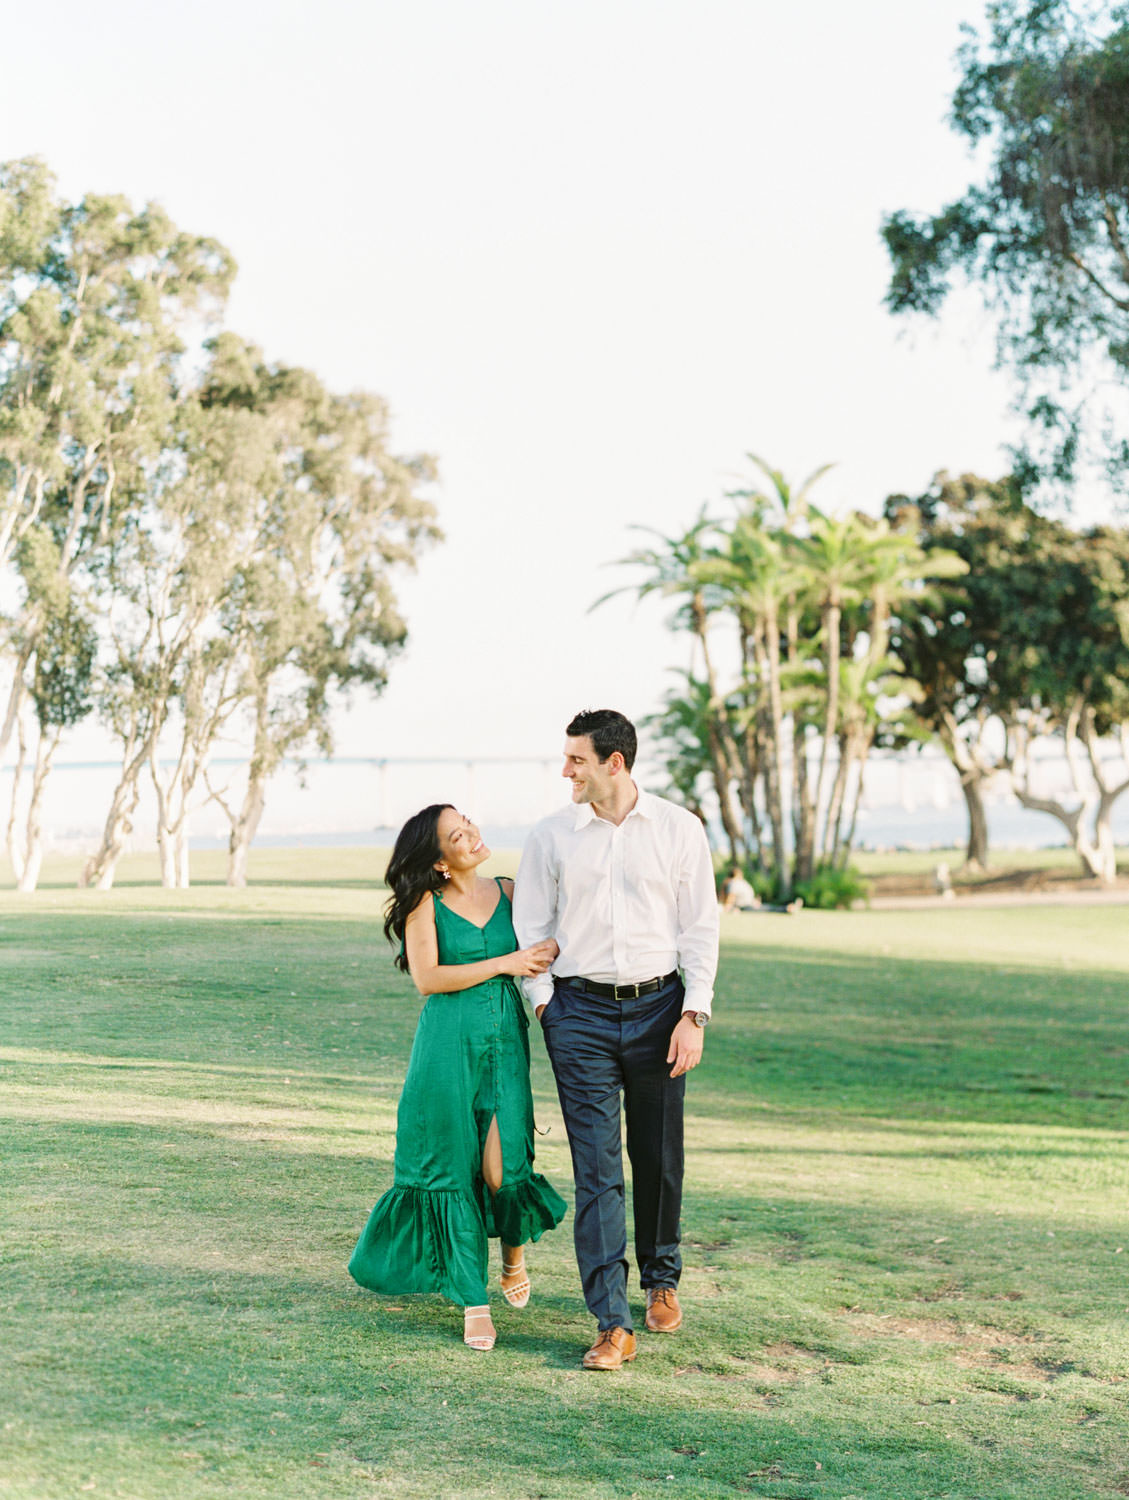 Groom and bride walking. Bride in Tularosa Villa Dress from Revolve and groom in white button down and . San Diego Embarcadero North engagement photos on film by Cavin Elizabeth Photography